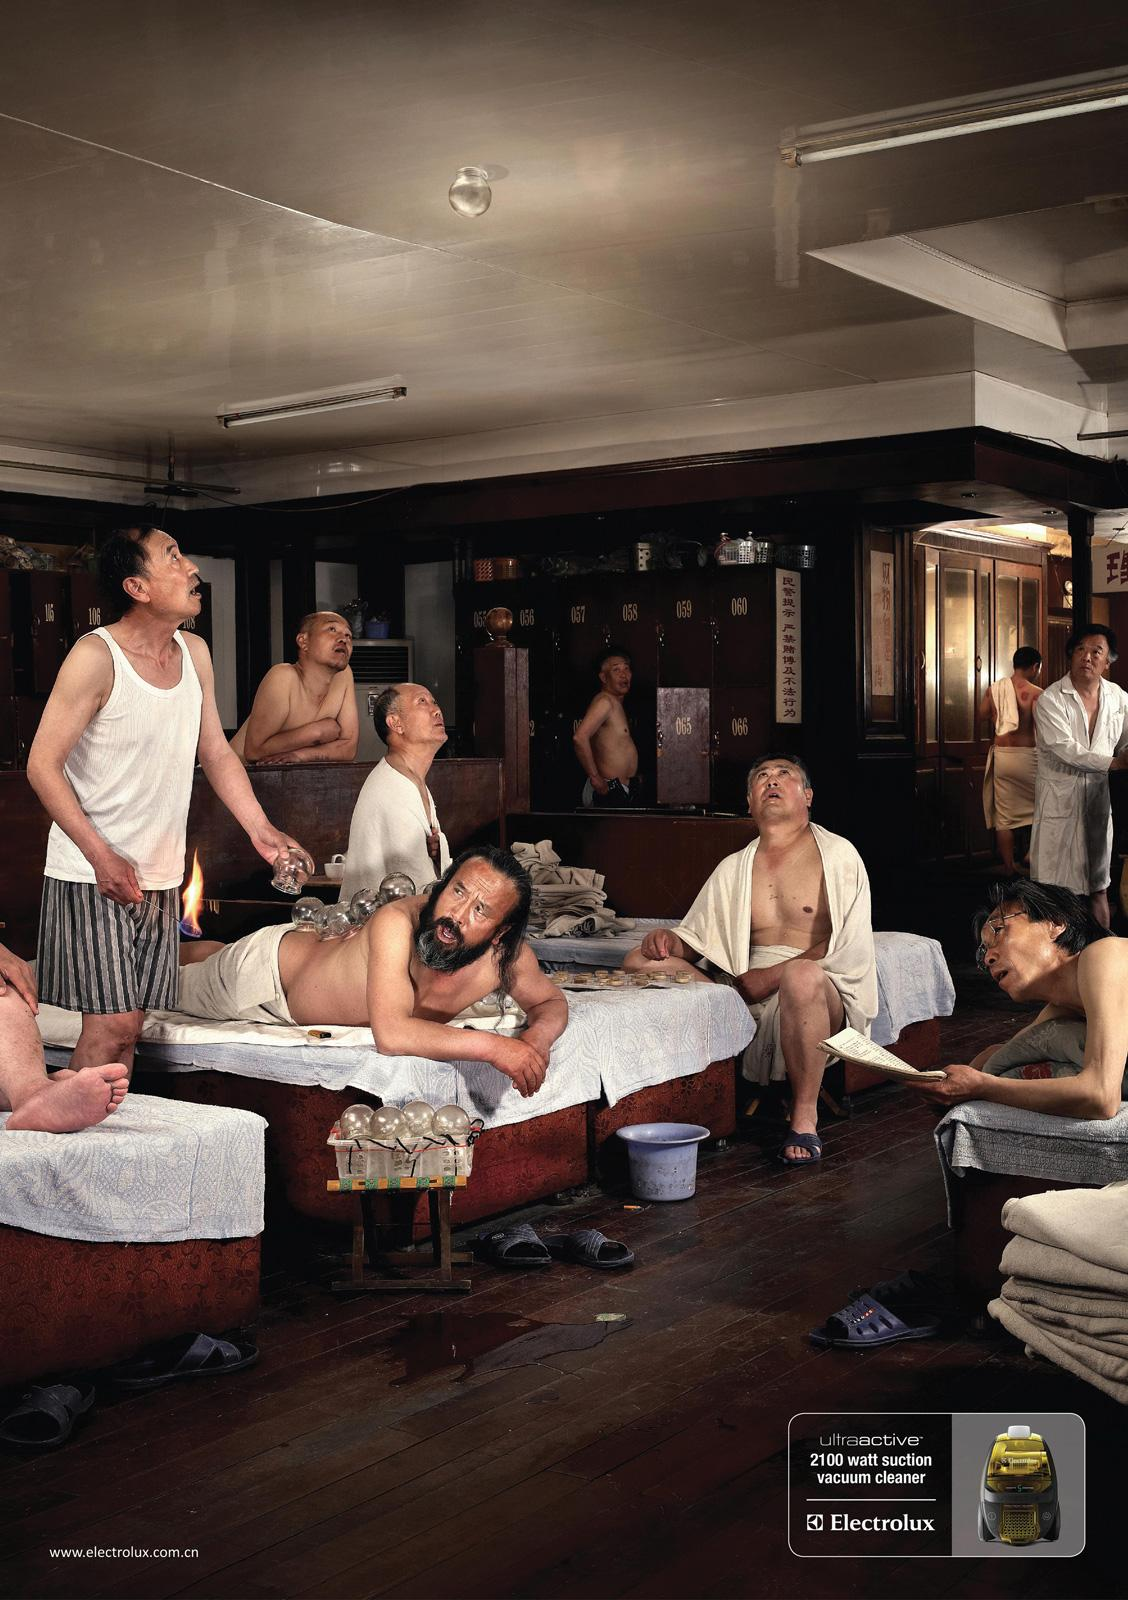 Electrolux Print Ad -  The bath house